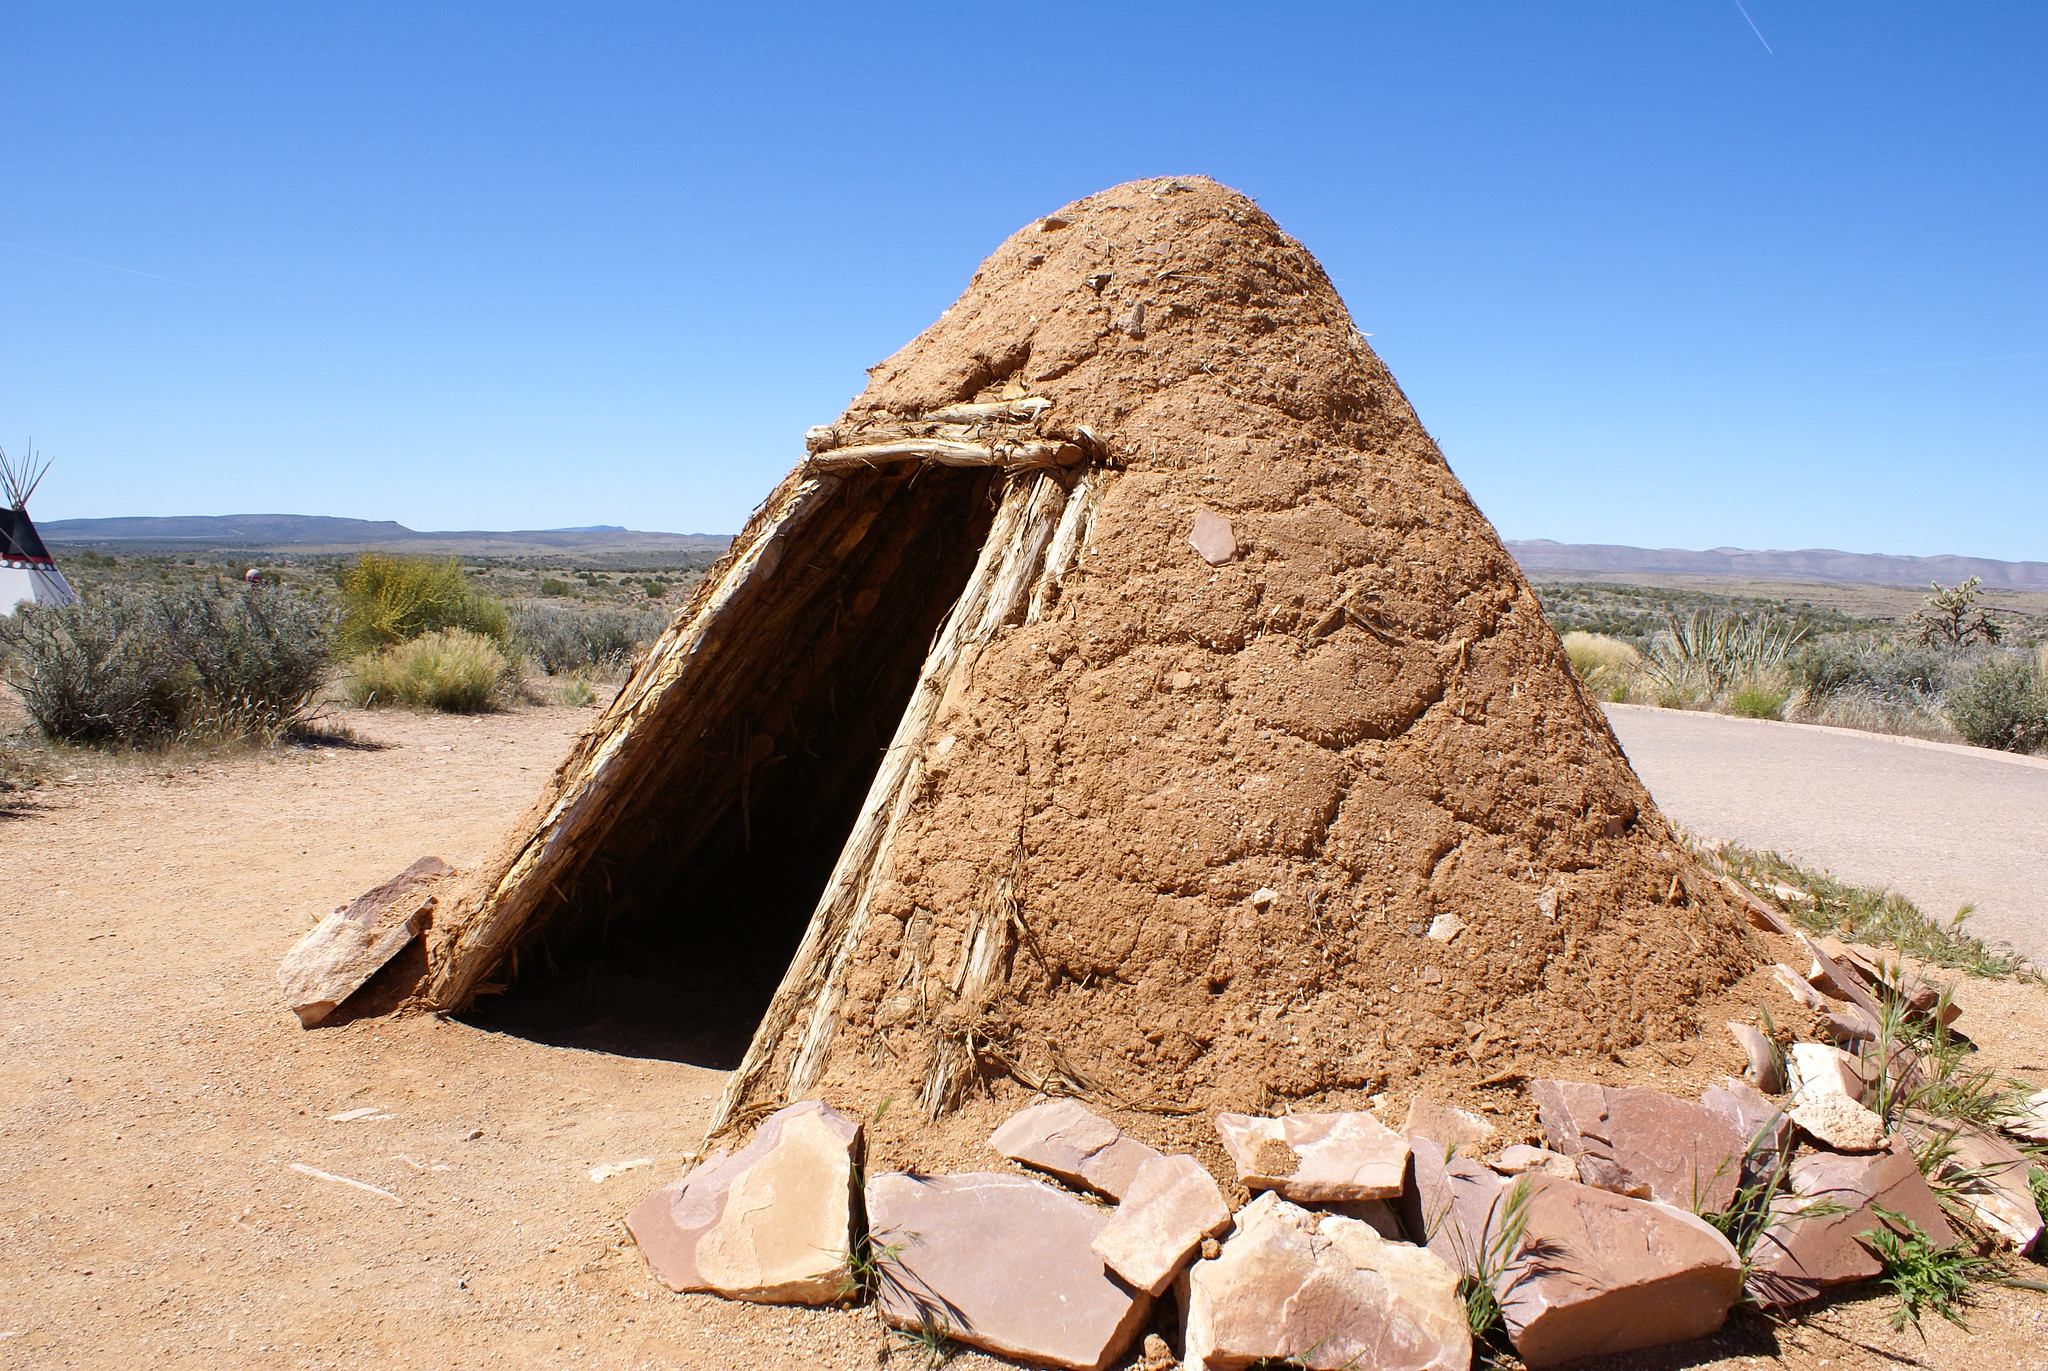 hualapai dating To date, 19 of arizona's 22 federally recognized indian tribes and  regional  partnership councils: the hualapai tribe regional partnership council which.